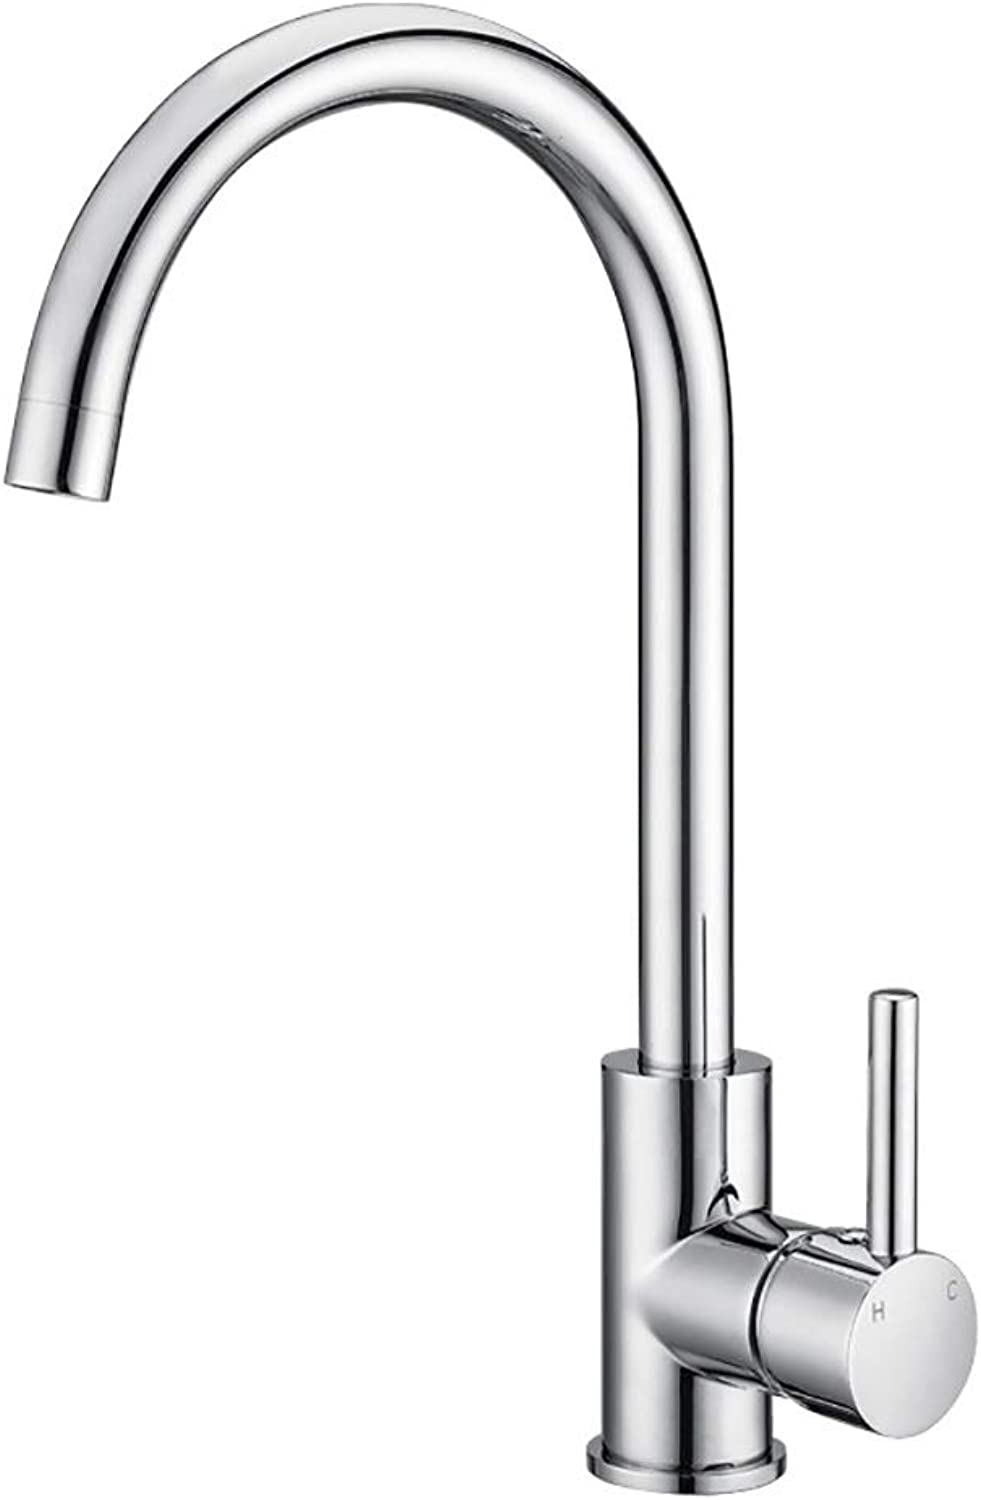 WYRSXPY Basin Tap Kitchen Faucet Brass Single Handle 360° Swivel Kitchen Sink Tap Hot And Cold Water Tap (color   Silver)